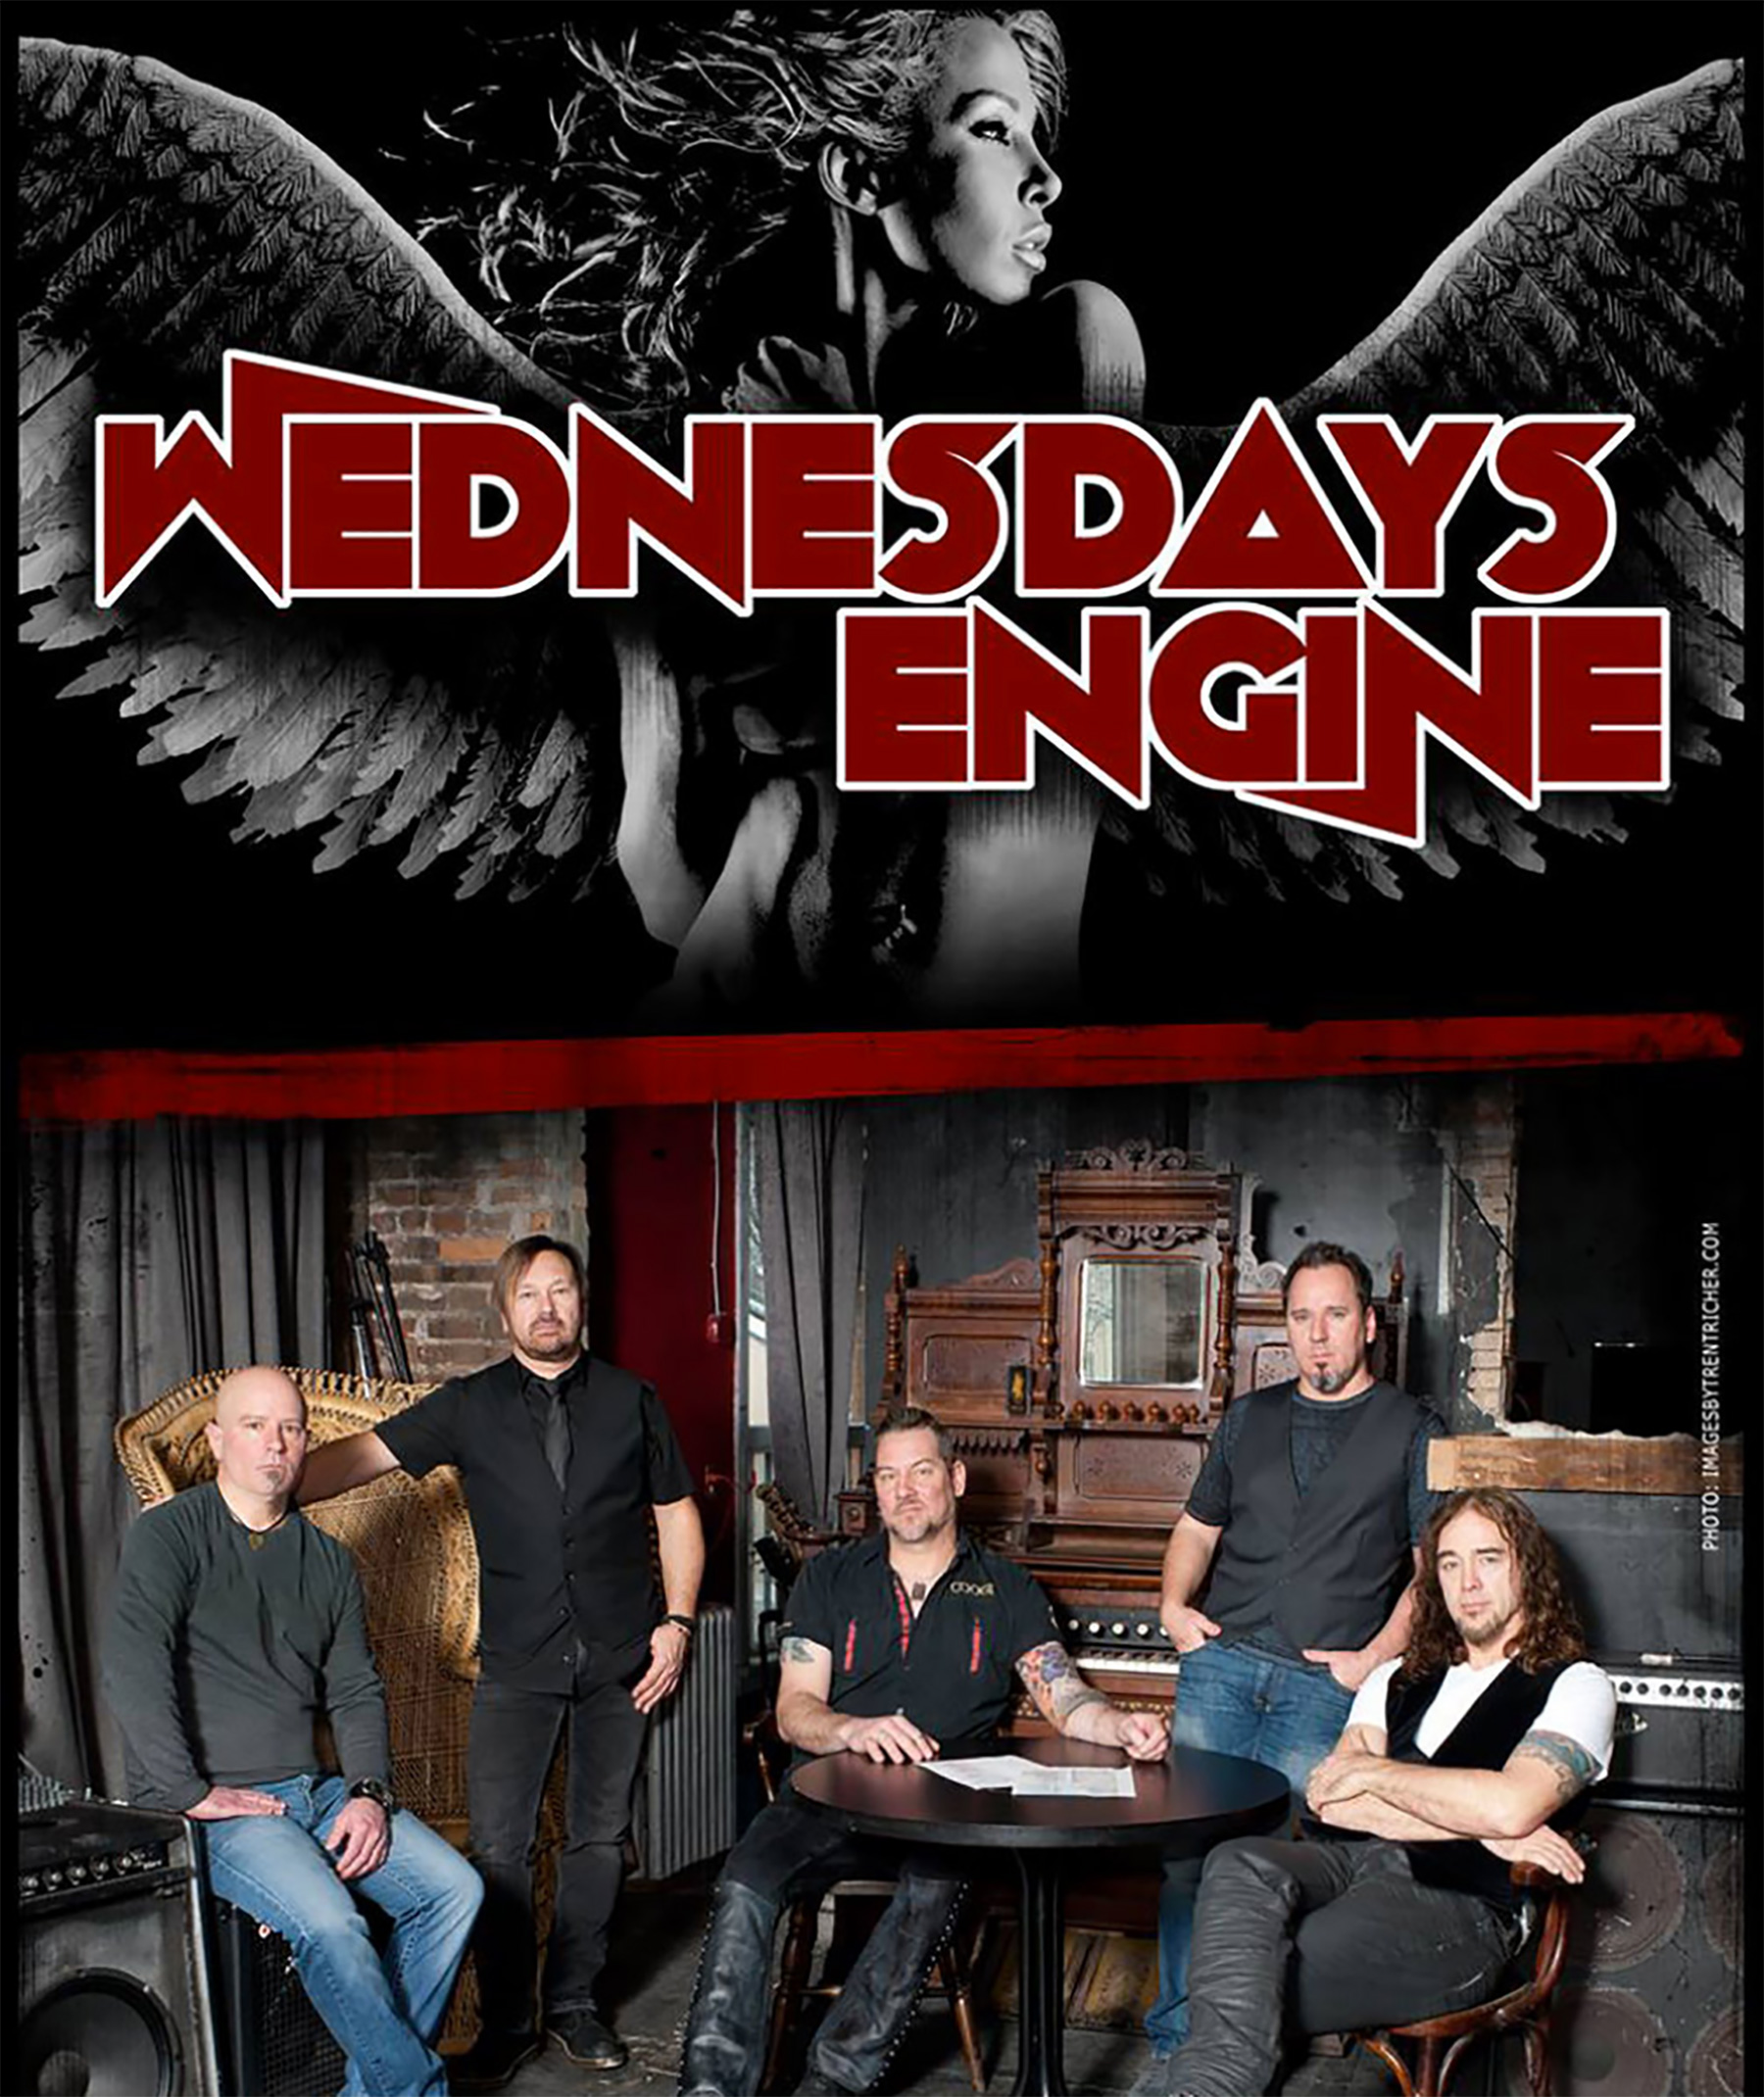 """Wednesday's Engine is a 5-piece pop, rock and dance band with a great  set list and a unique and refreshing take on popular covers. With an  ensemble of accomplished singers and musicians, WE combines edge and  diversity with massive hit songs to create a set list that is both  familiar and unpredictable, and they somehow manage to make Rihanna,  Nine Inch Nails and Justin Timberlake sound like they should be played  one right after the other. An innovative band with a repertoire that is  always changing, WE will keep you on the dance floor all night saying  """"Wow! I love this song too!""""."""